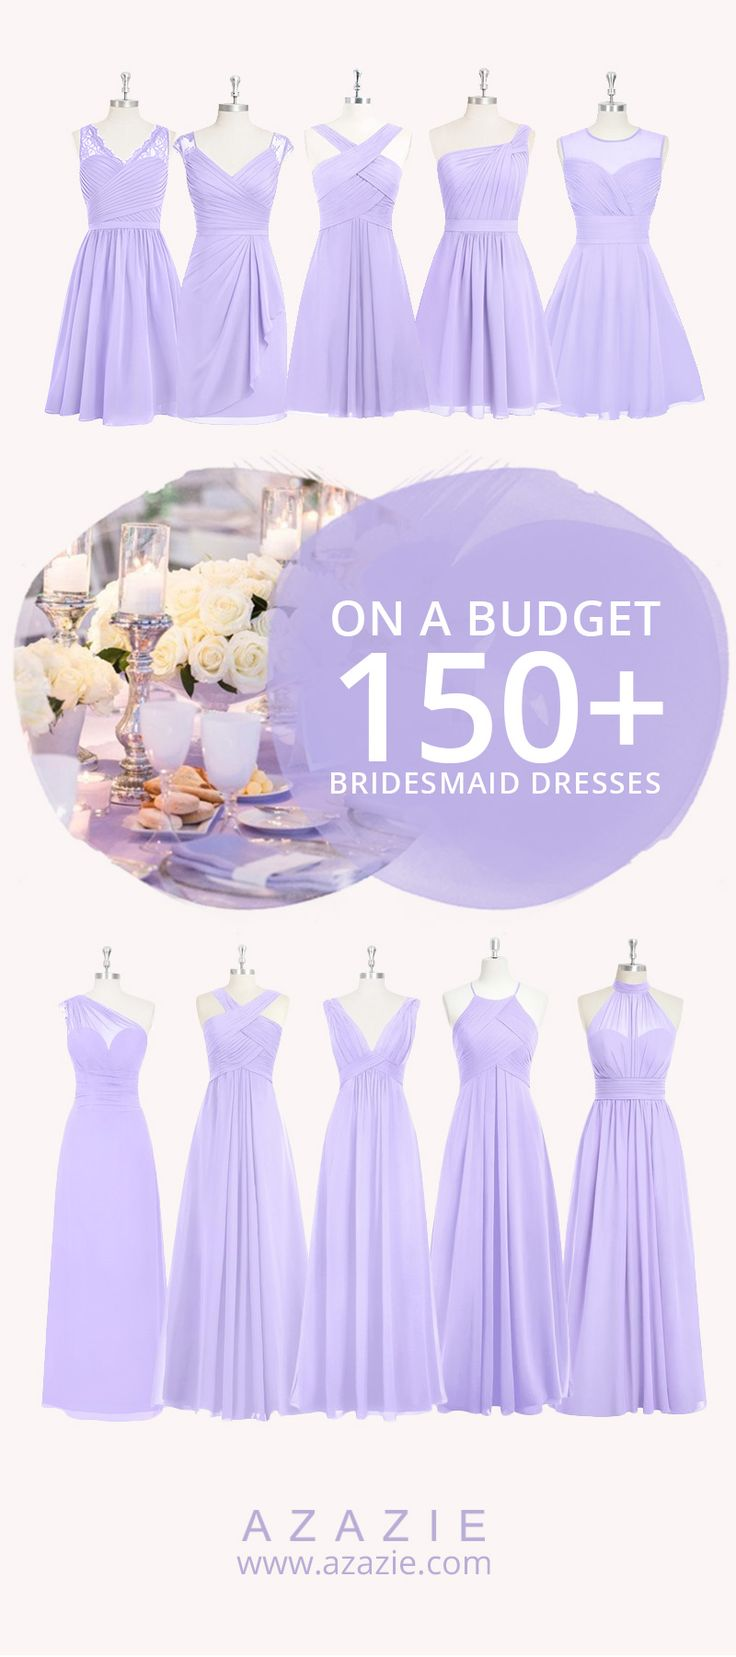 133 best Bridesmaids images on Pinterest | Bridal gowns, Bridesmade ...